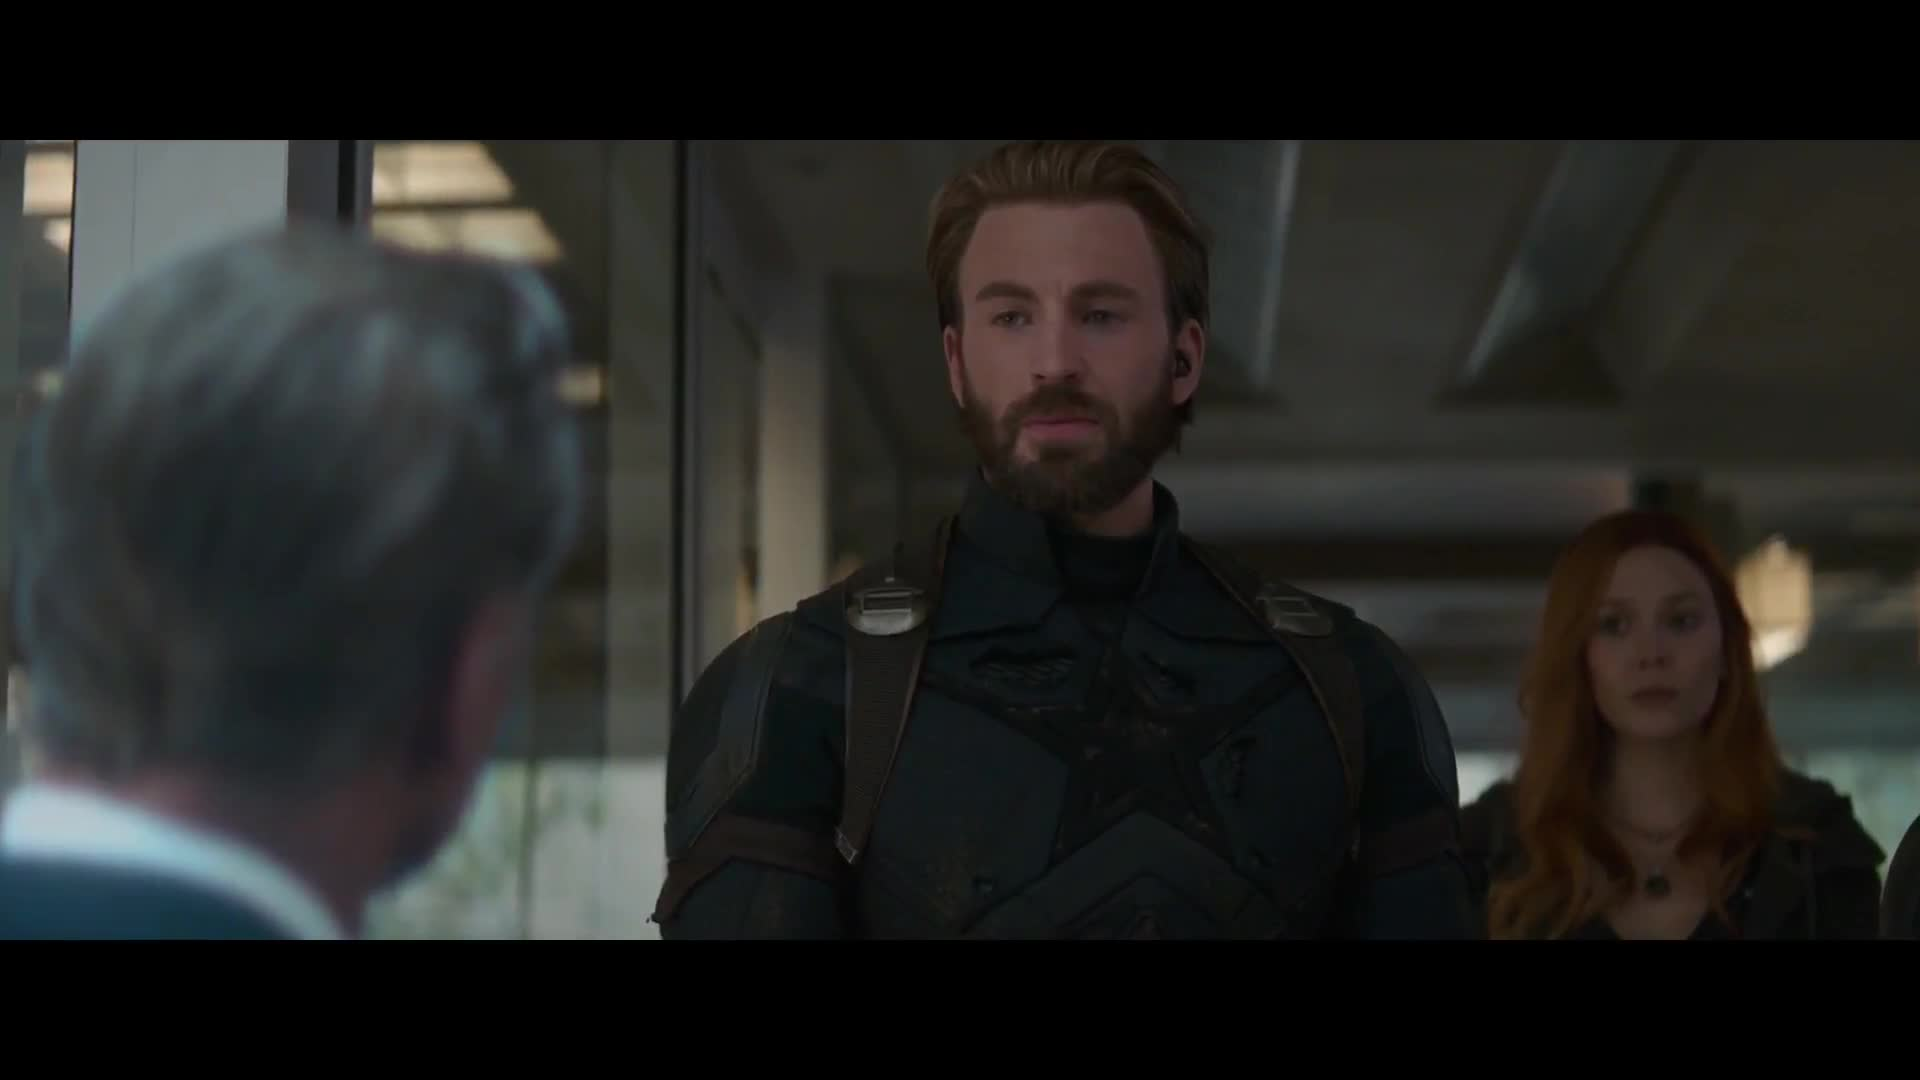 Vingadores Gifs Search Search Share On Homdor